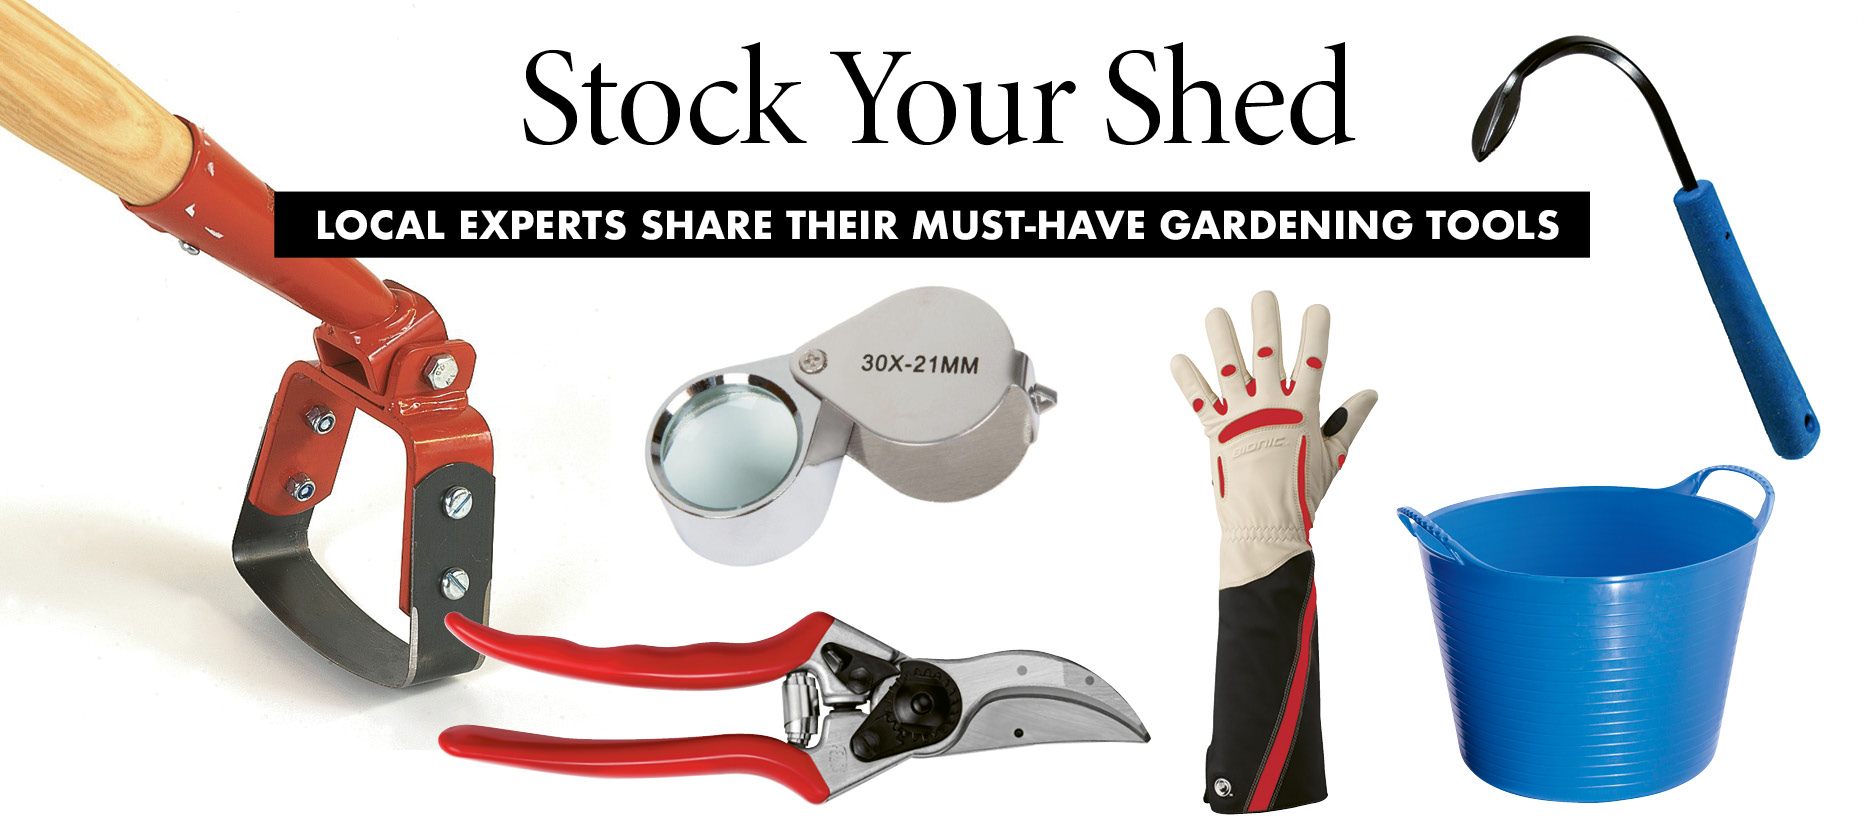 Stock Your Shed